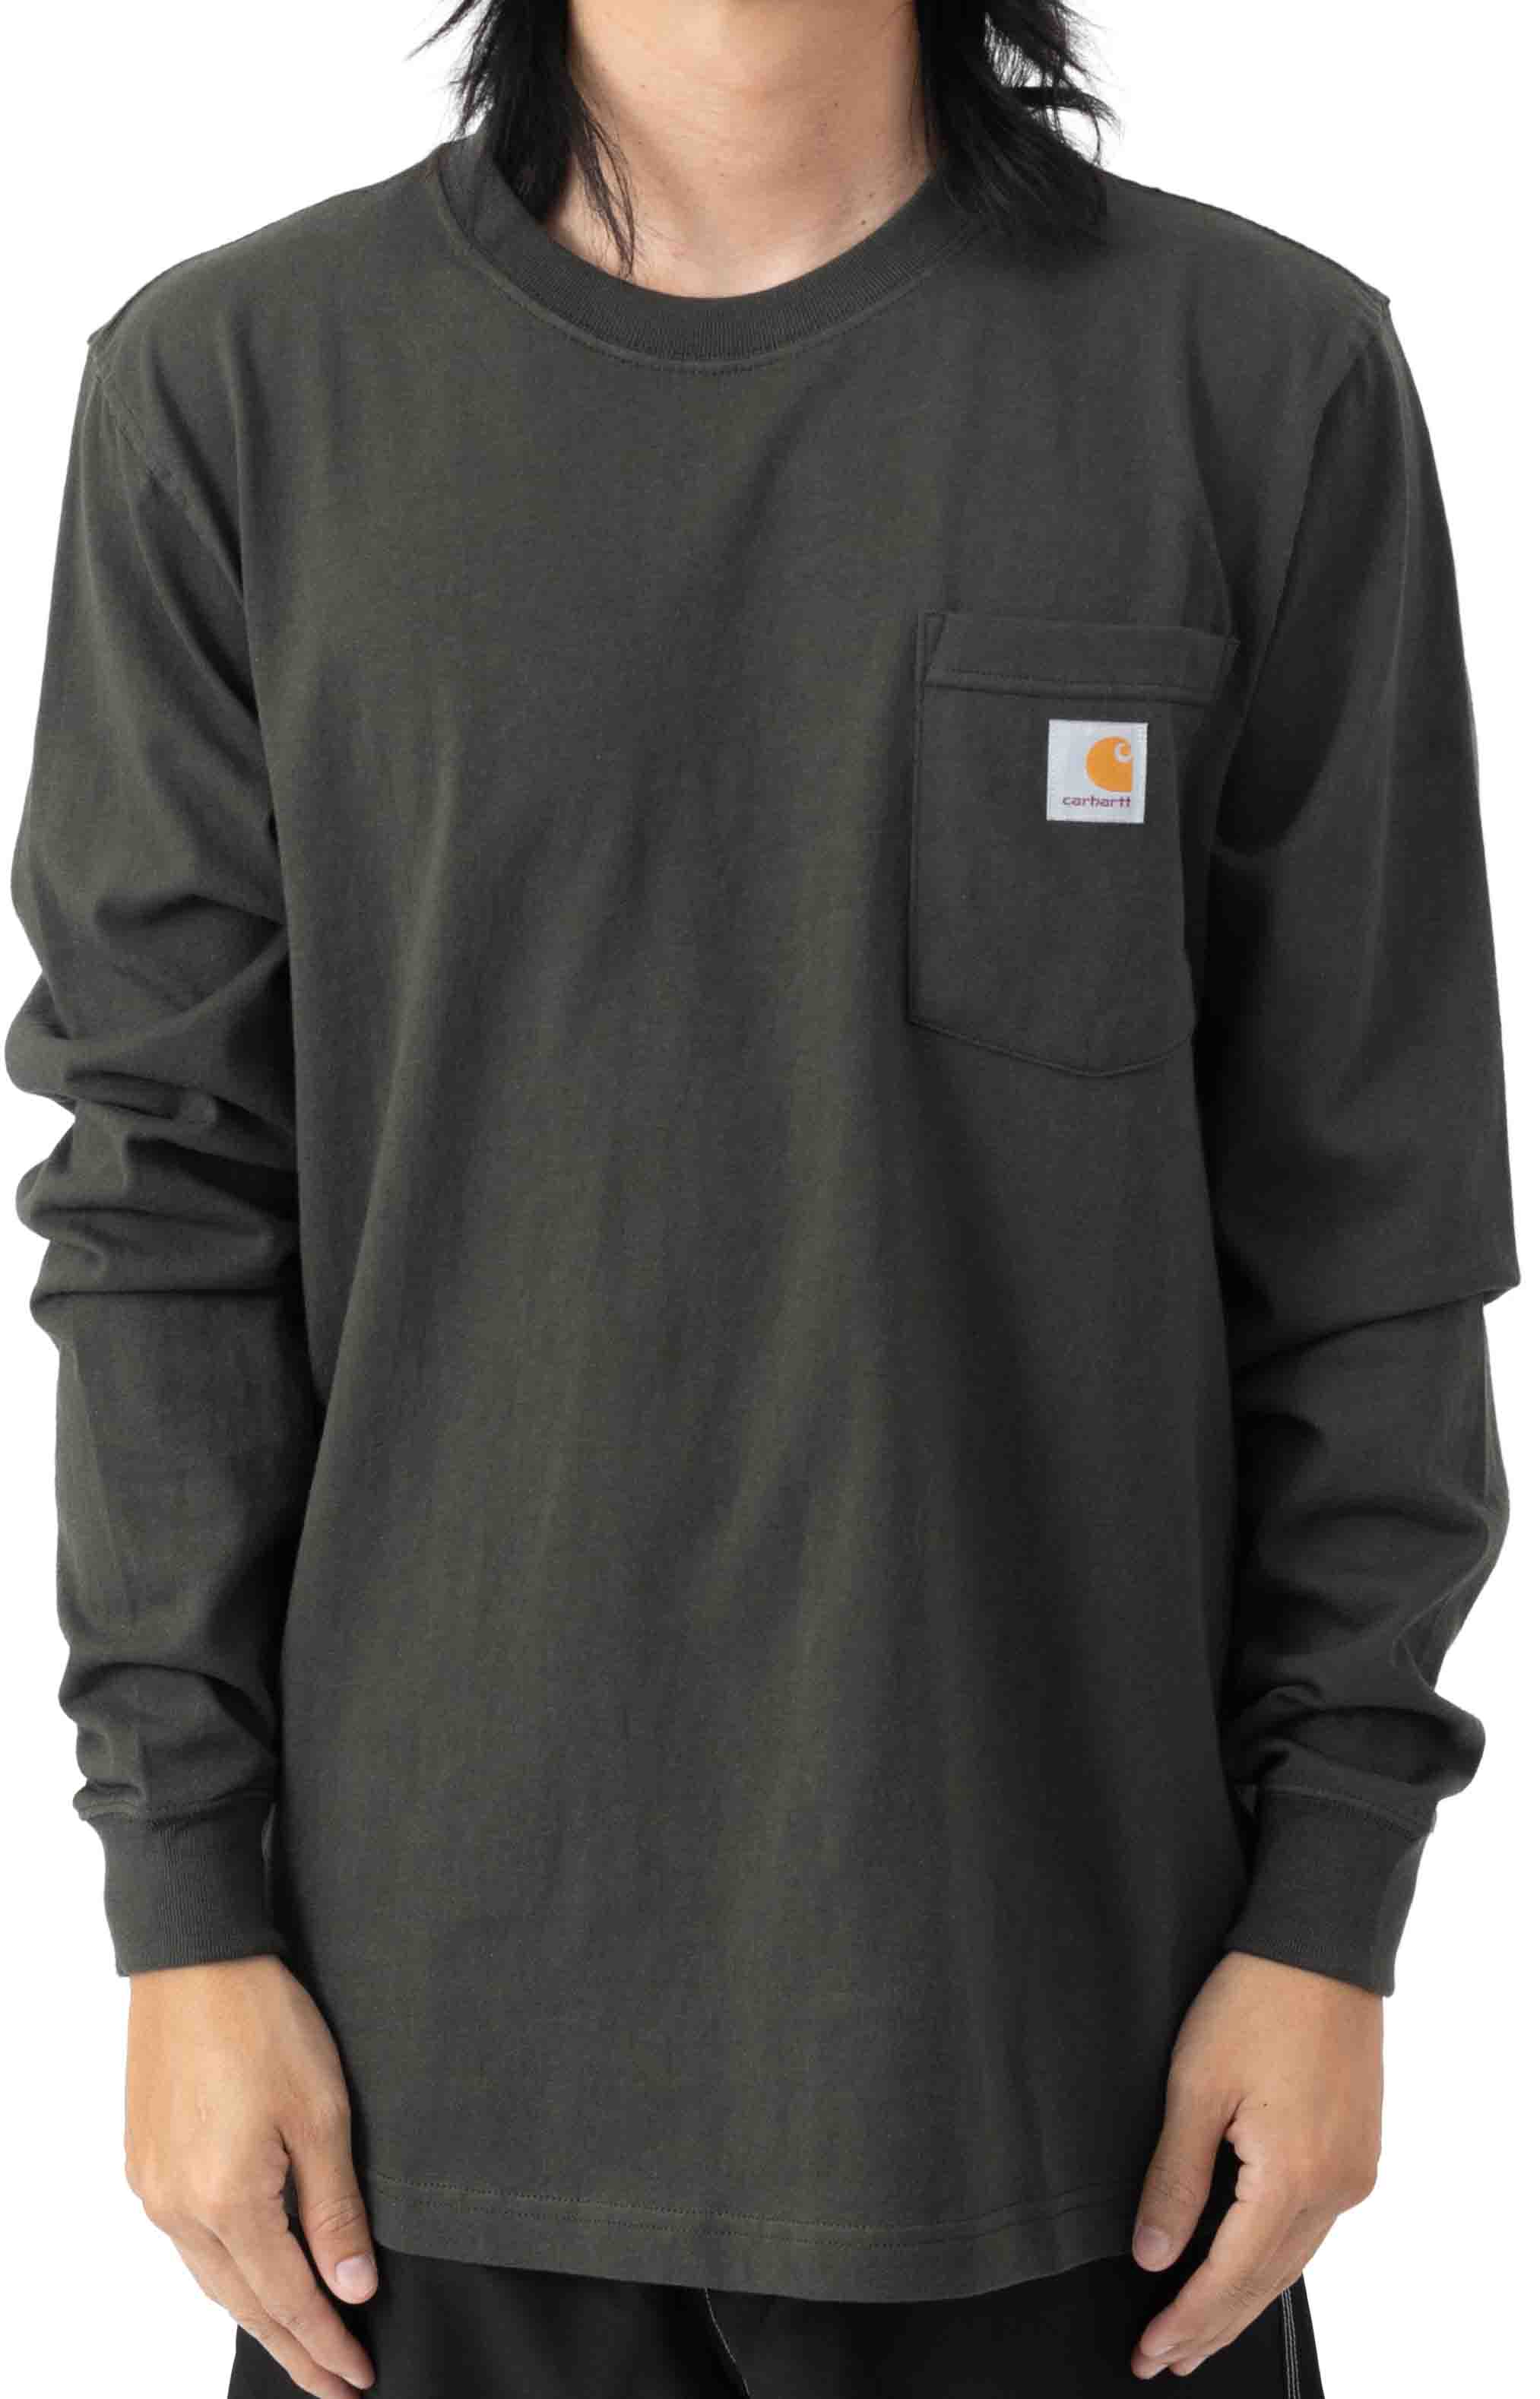 (104895) Relaxed Fit Heavyweight LS Pocket Craftsman Graphic T-Shirt - Peat 2